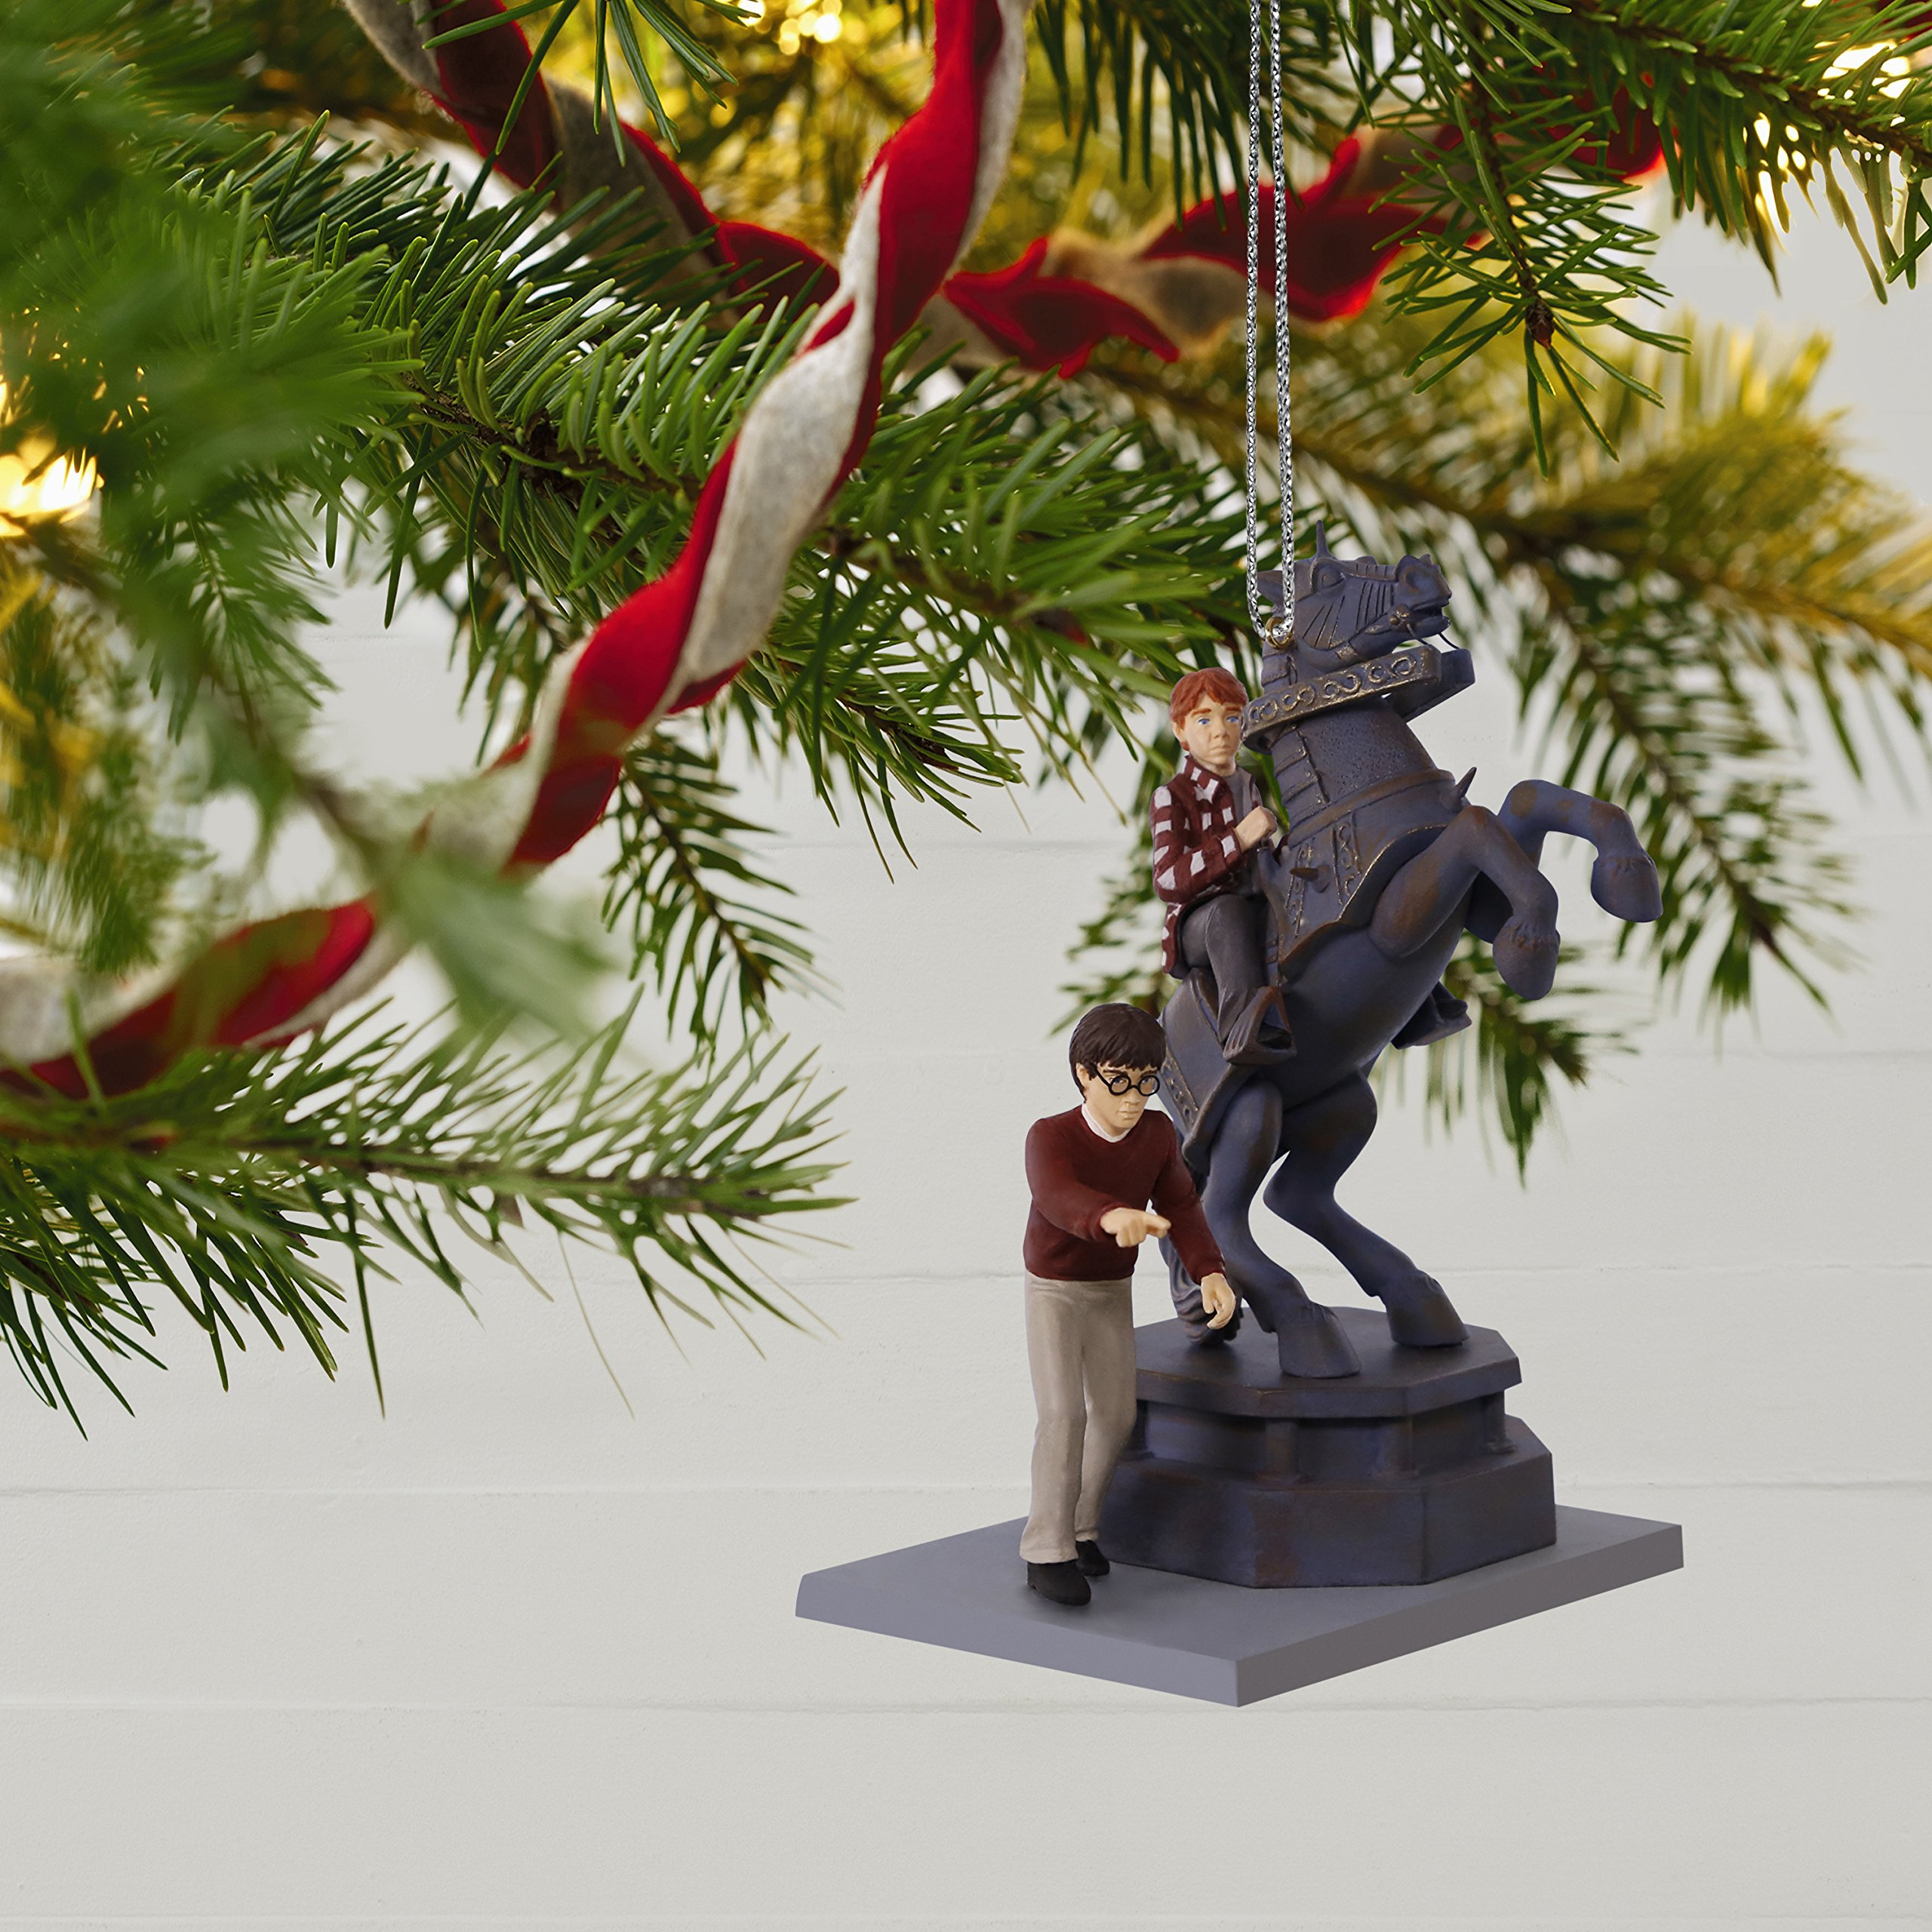 this hallmark harry potter christmas ornament depicts the exciting human chess game scene from harry potter and the sorcerers stone as ron weasley risks